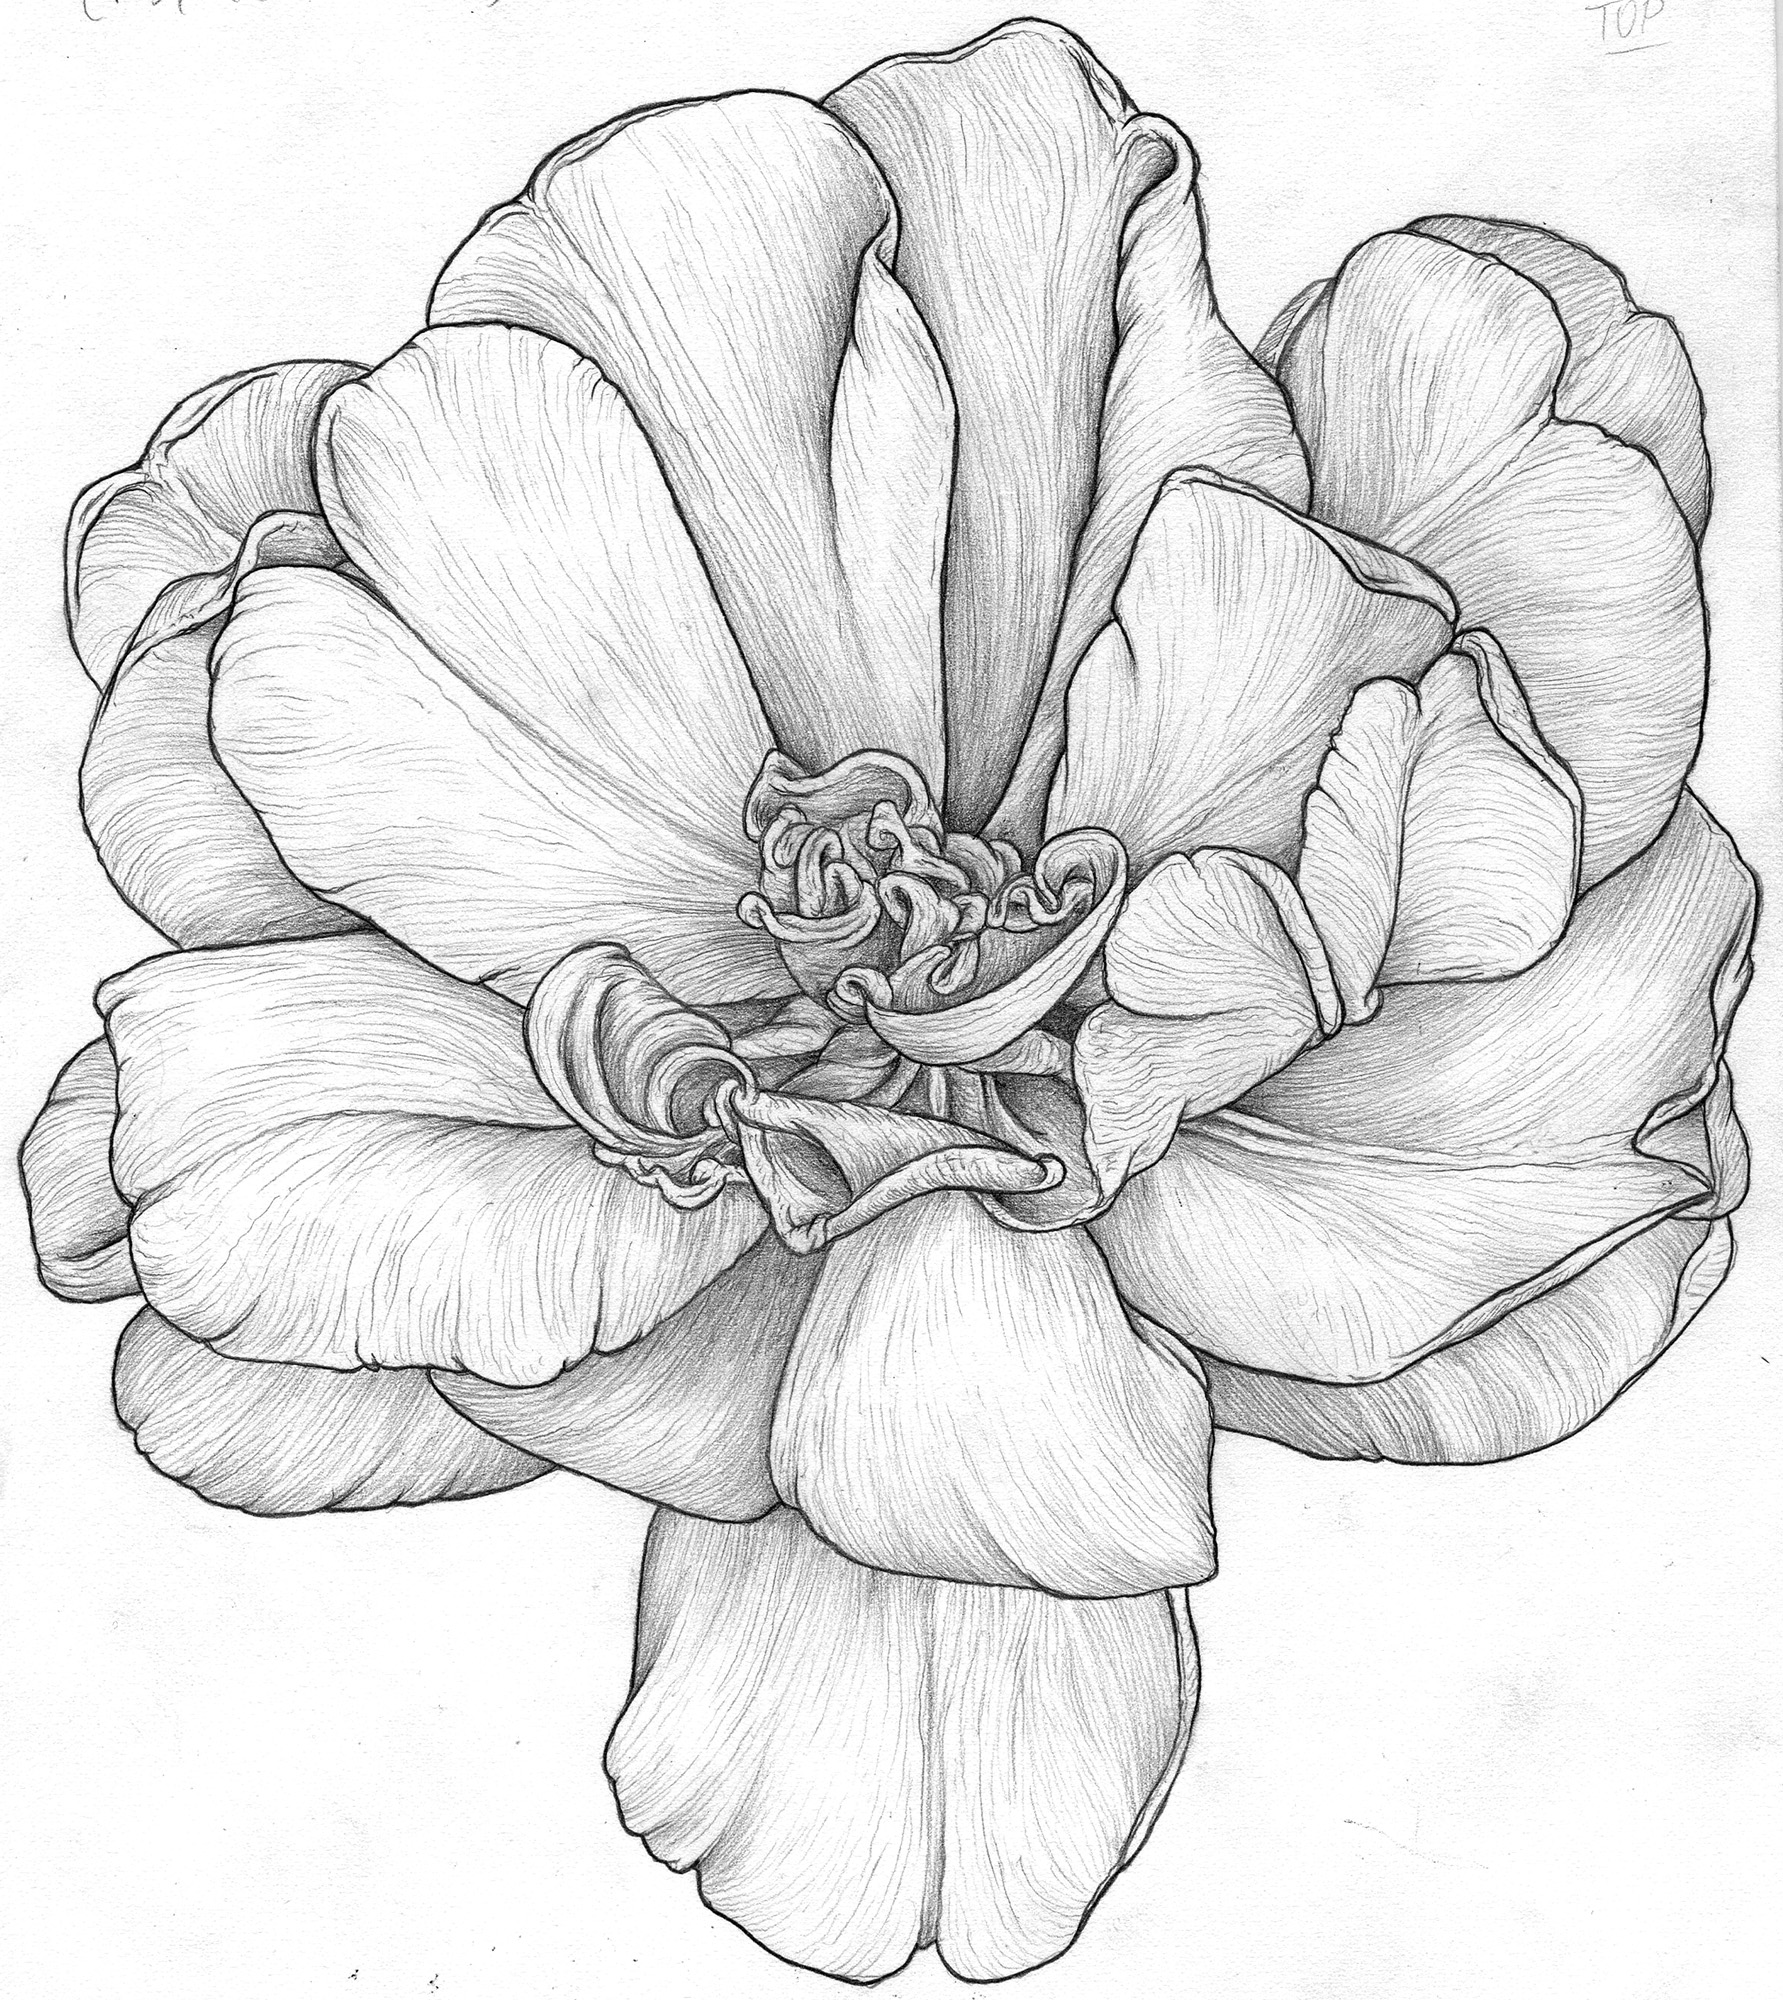 graphite sketch flower 2 web.jpg